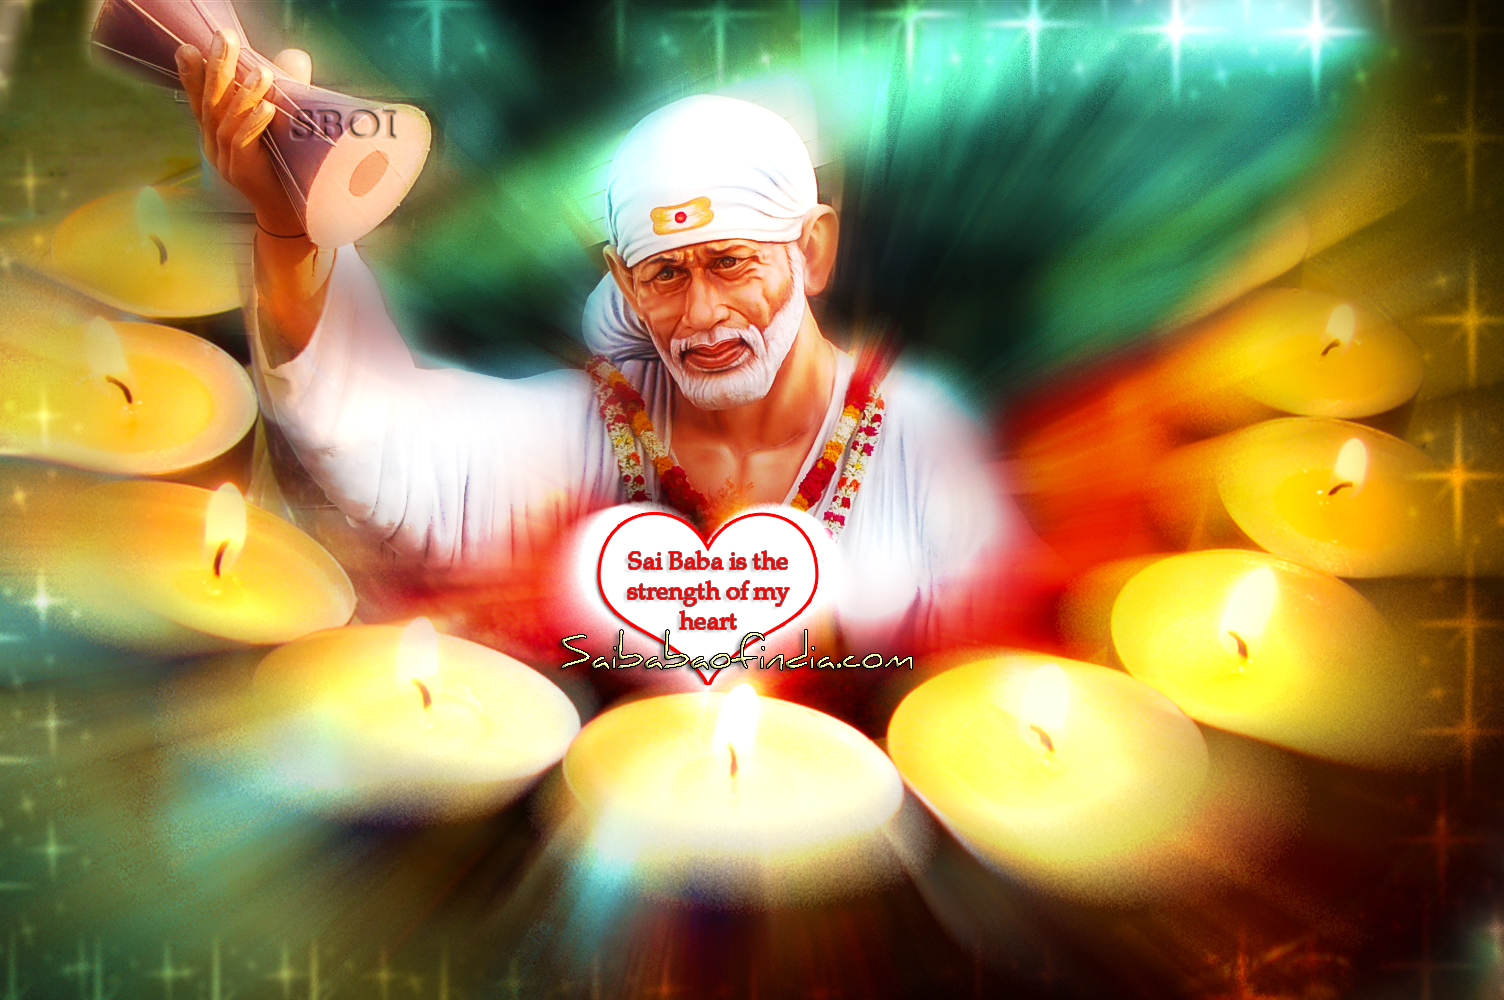 Krishna Wallpaper Desktop 3d Shirdi Sai Baba Shirdi Sai Photos Sai Baba Miracles